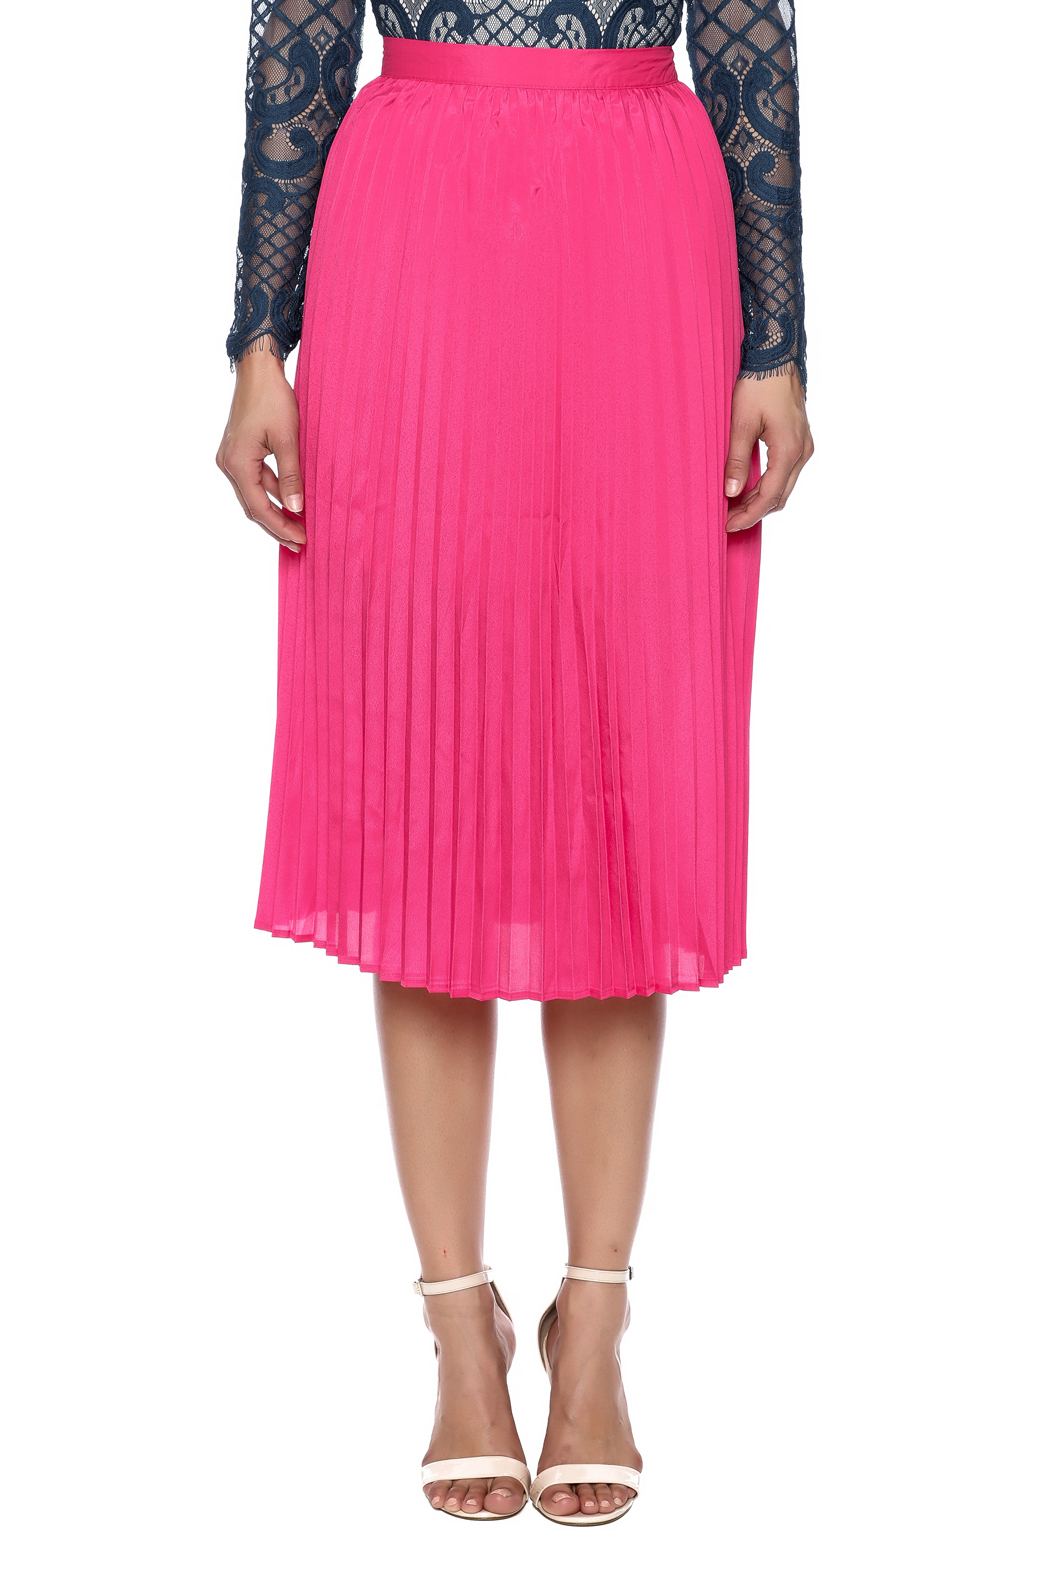 Pink Pleated Skirt — Shoptiques